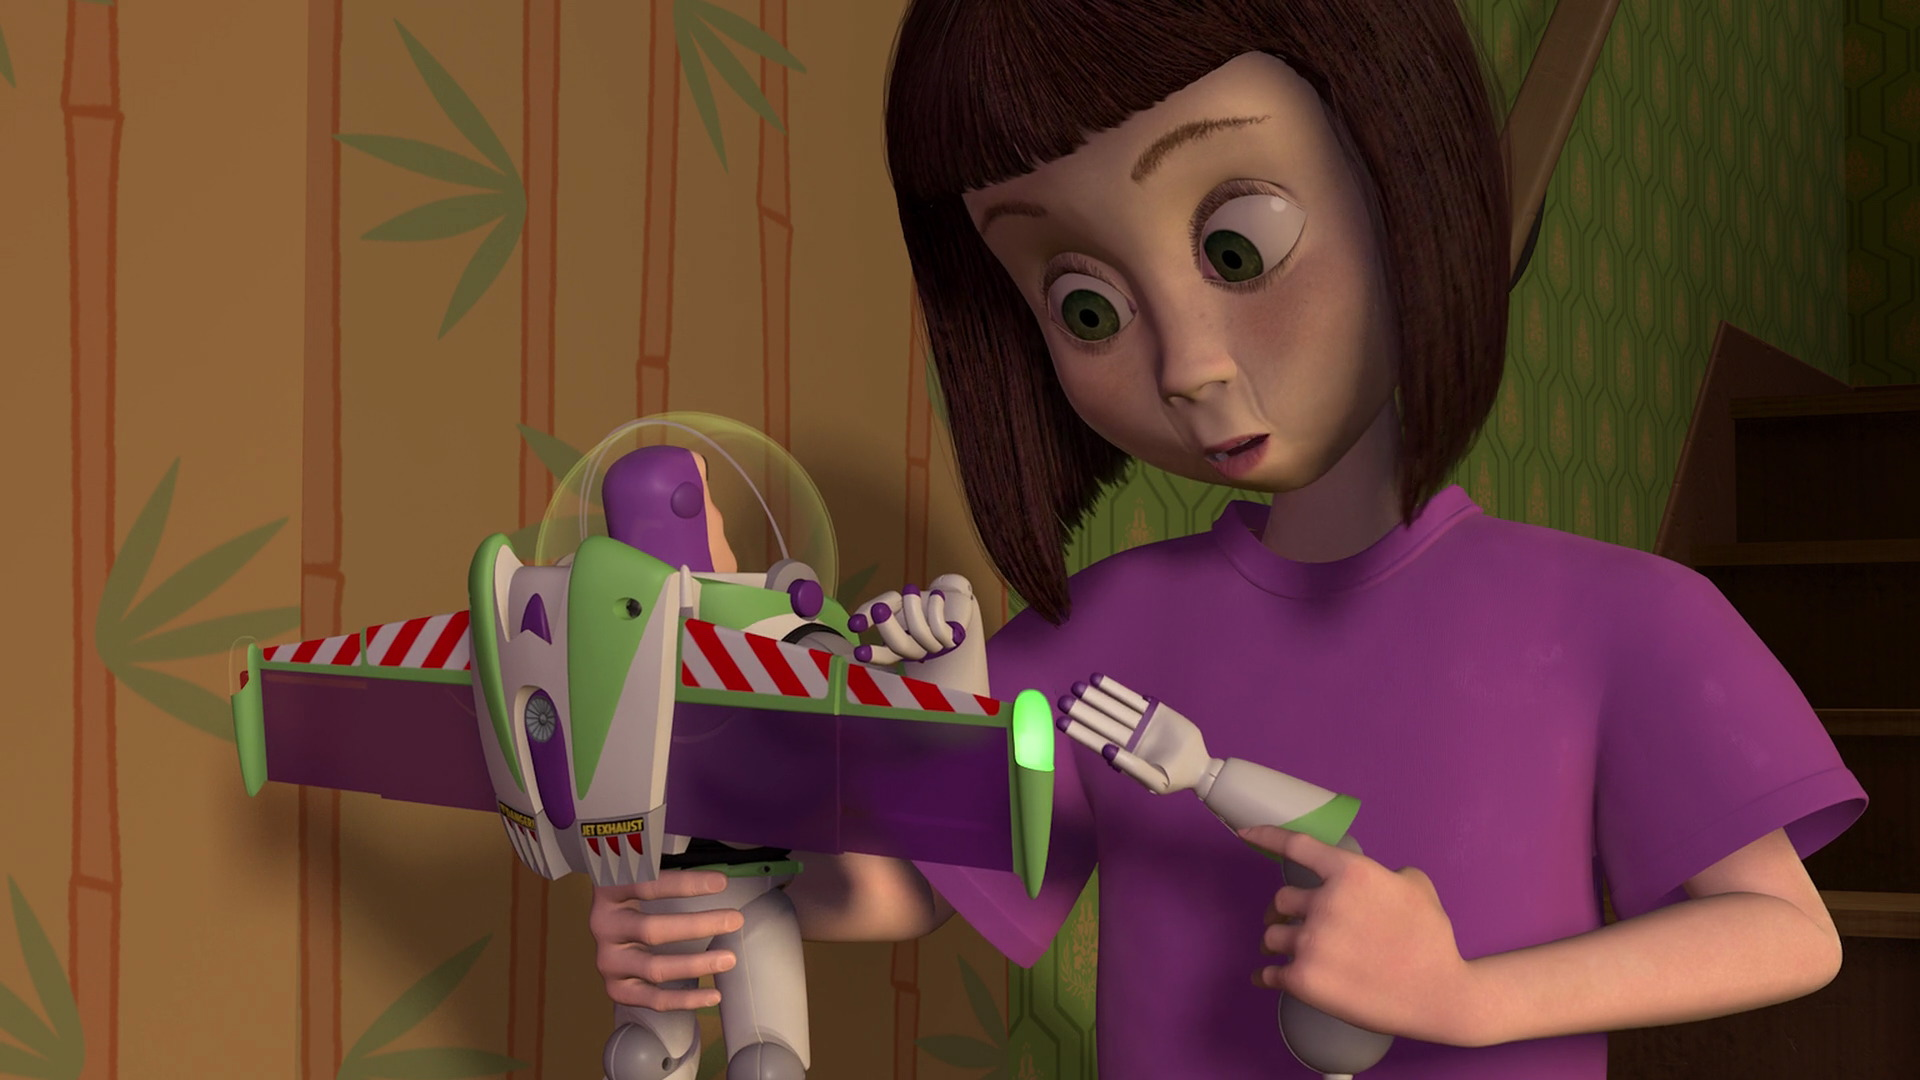 Hannah Phillips Character From Toy Story Pixar Planet Fr